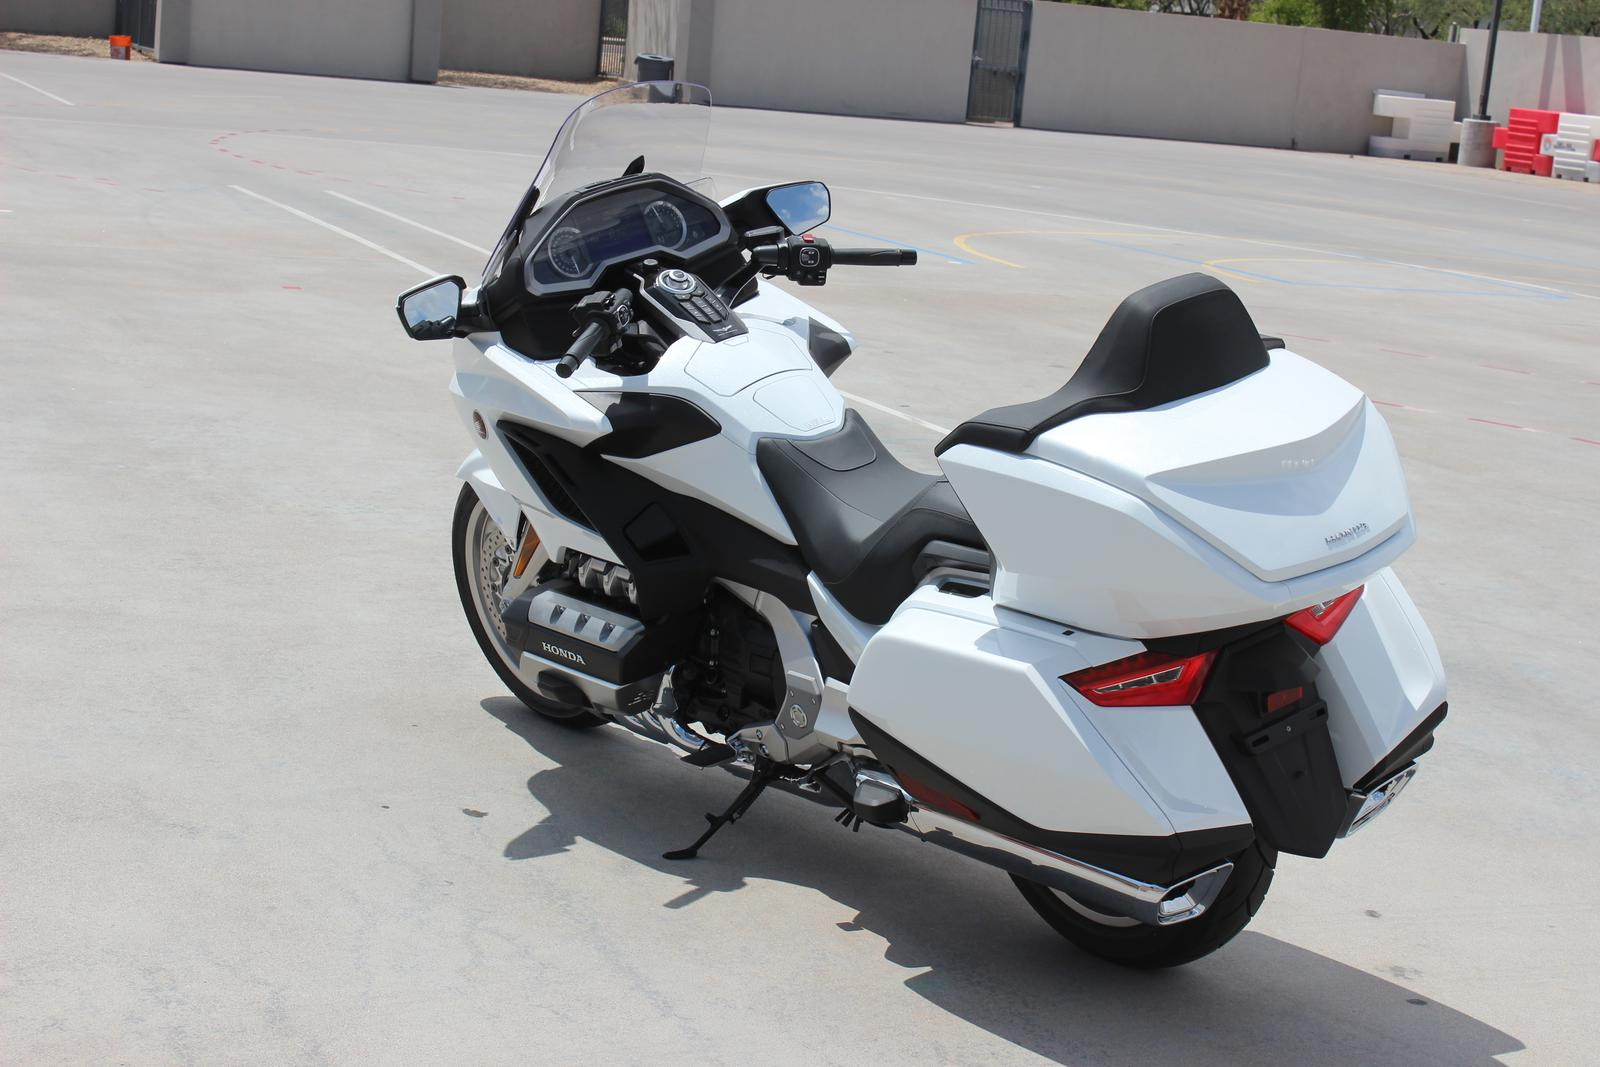 2018 Honda Gold Wing Tour Dct Pearl White For Sale In Scottsdale